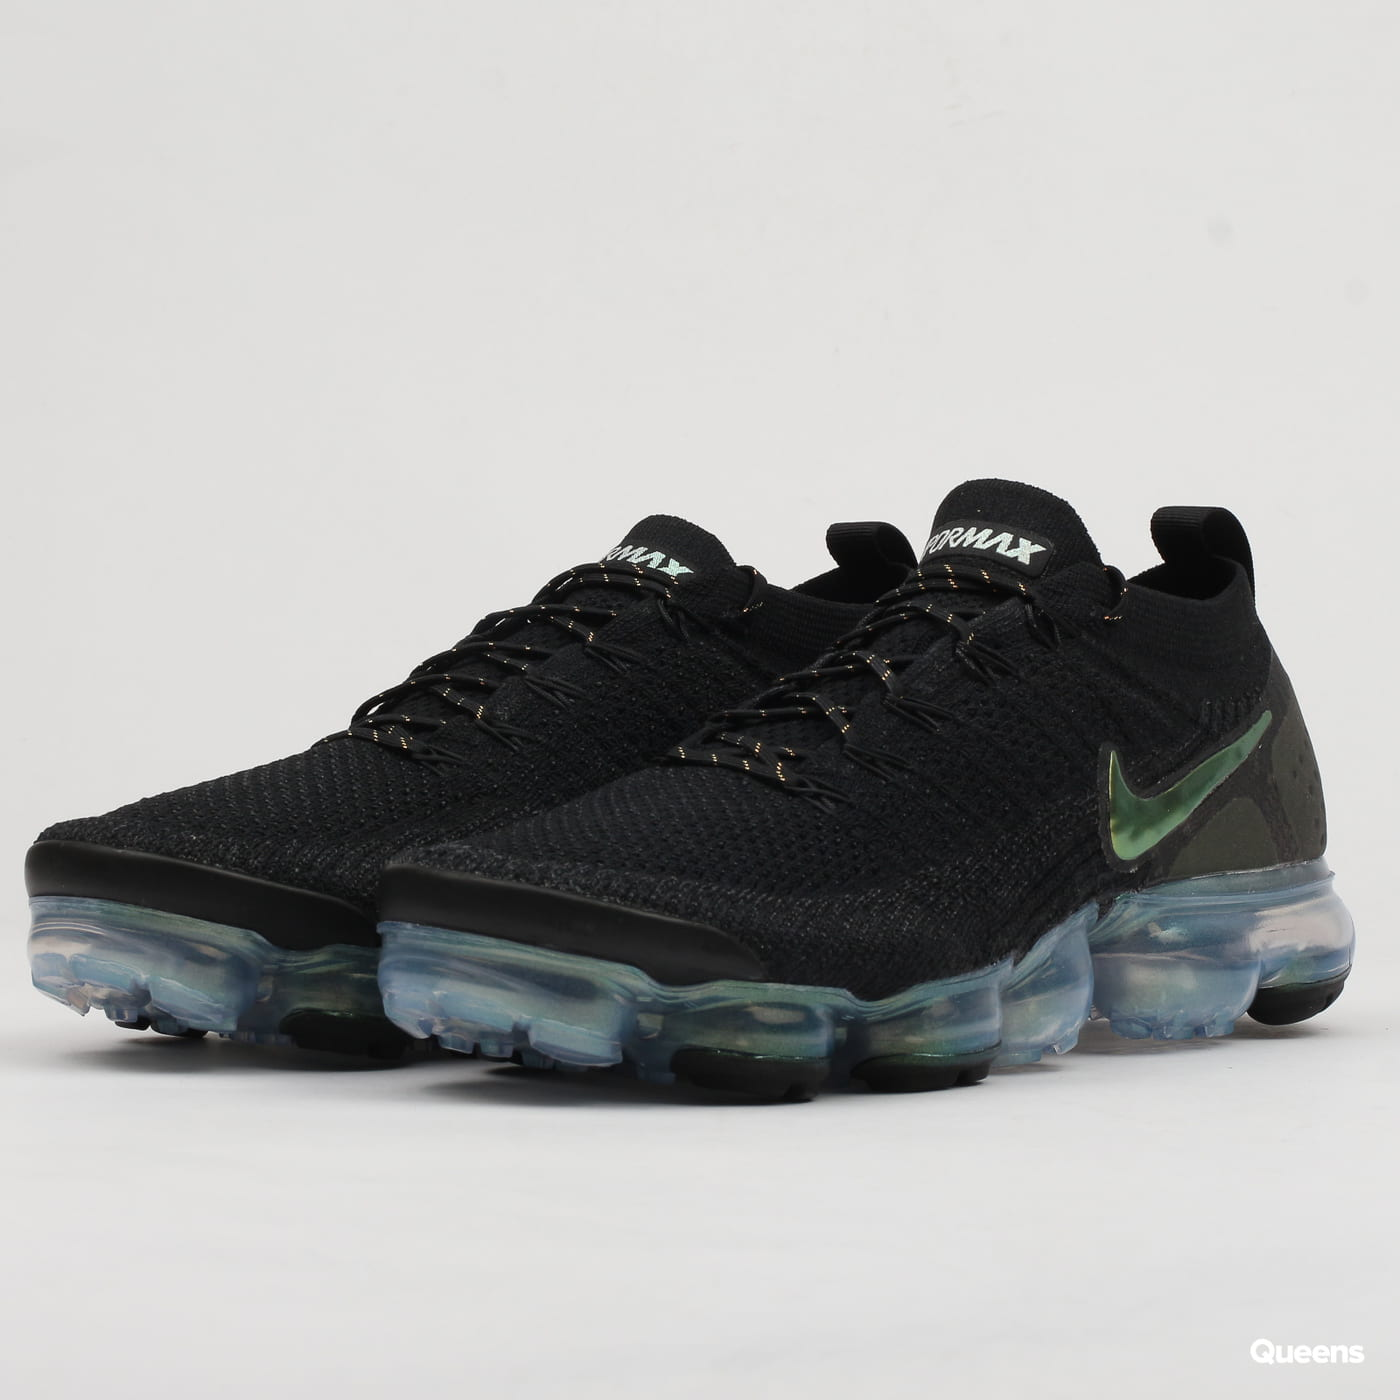 buy online a7e3a f9398 Nike Air Vapormax Flyknit 2 black / multi - color